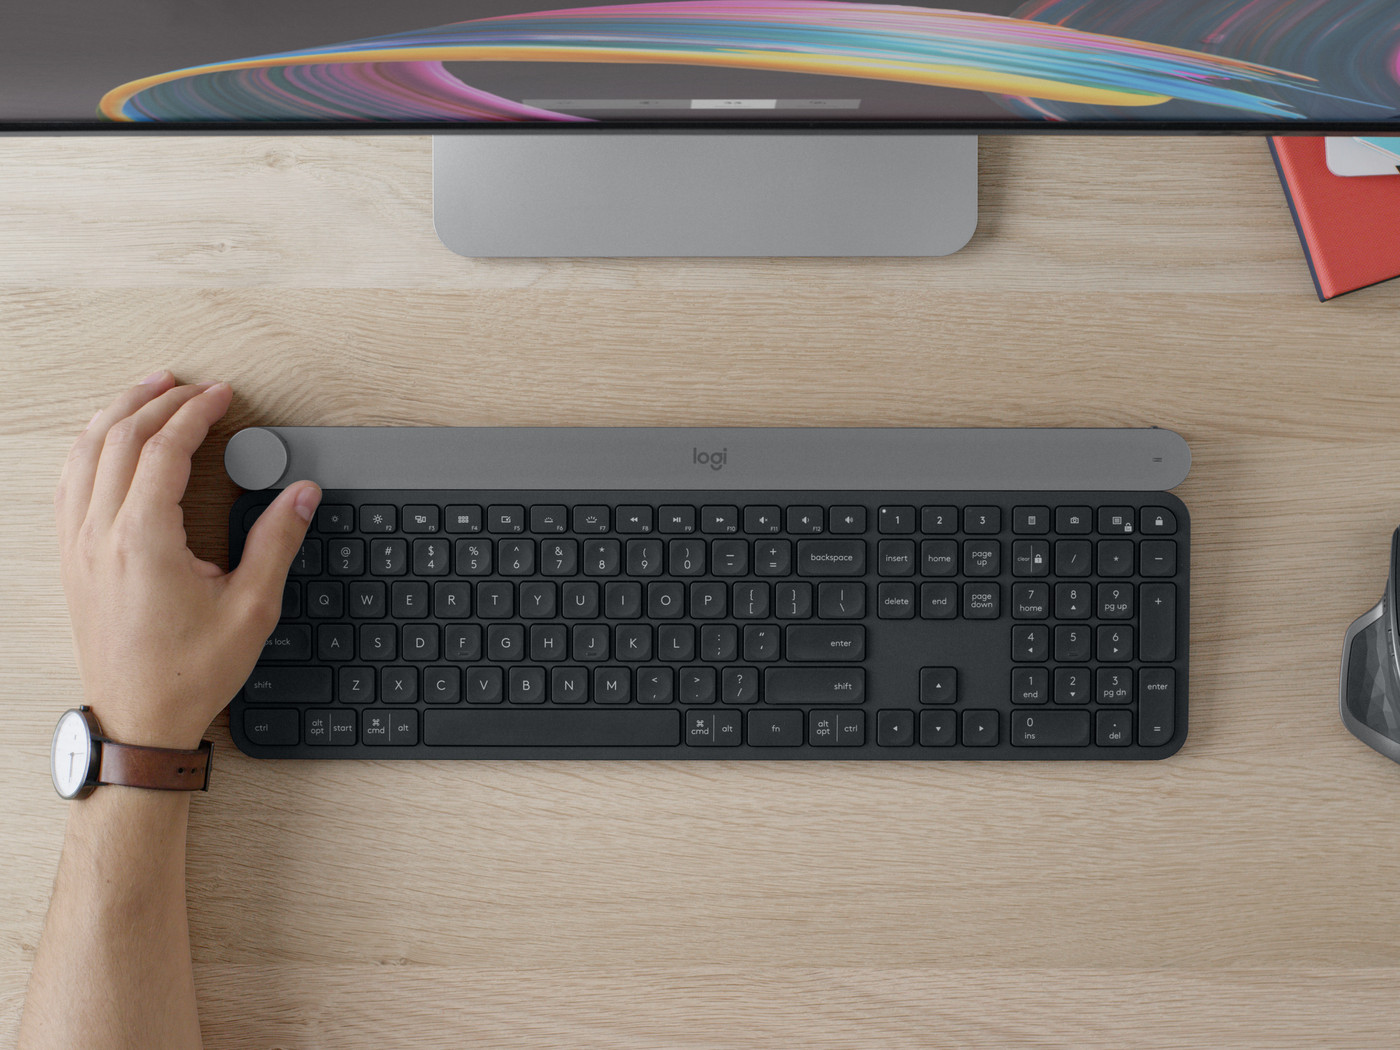 Logitech Mx Master 2s With - Control For Mac